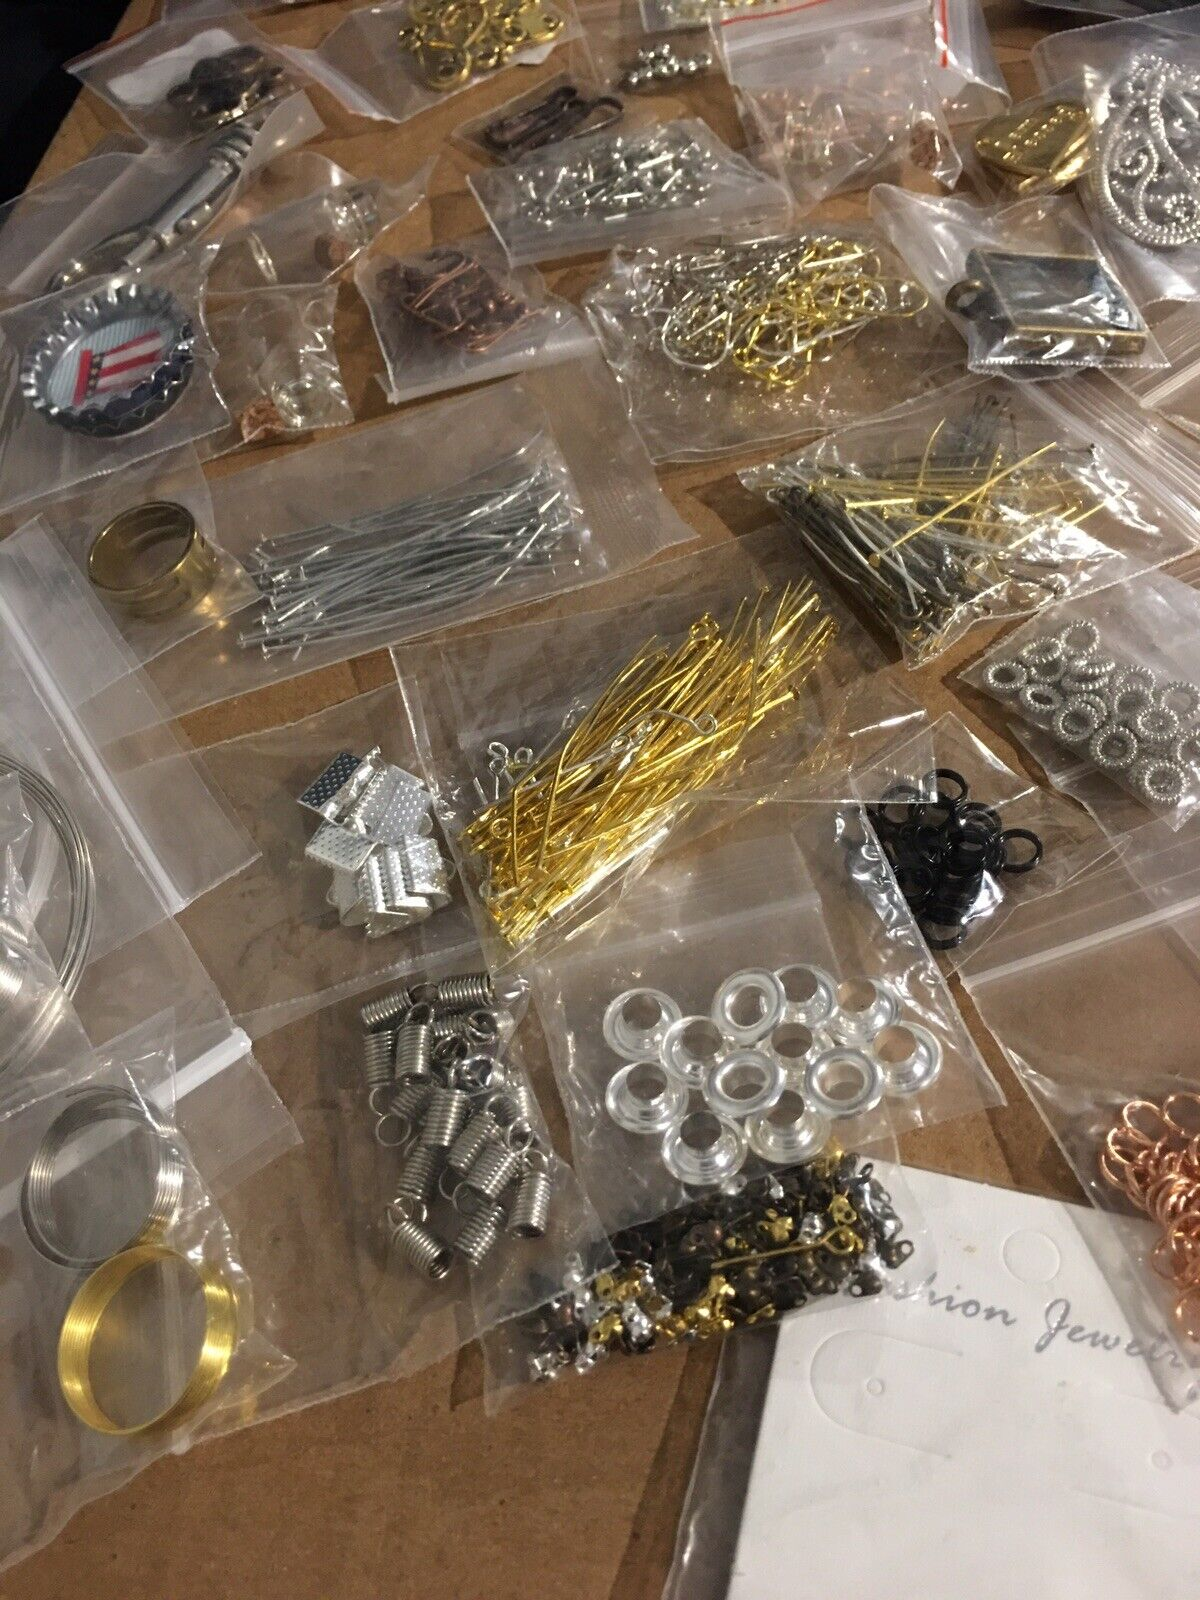 20 Bags Of FINDINGS Jewelry Making Supplies Lot Wire Closures Pendants 👑🐝 MrsQueenBeead - фотография #4